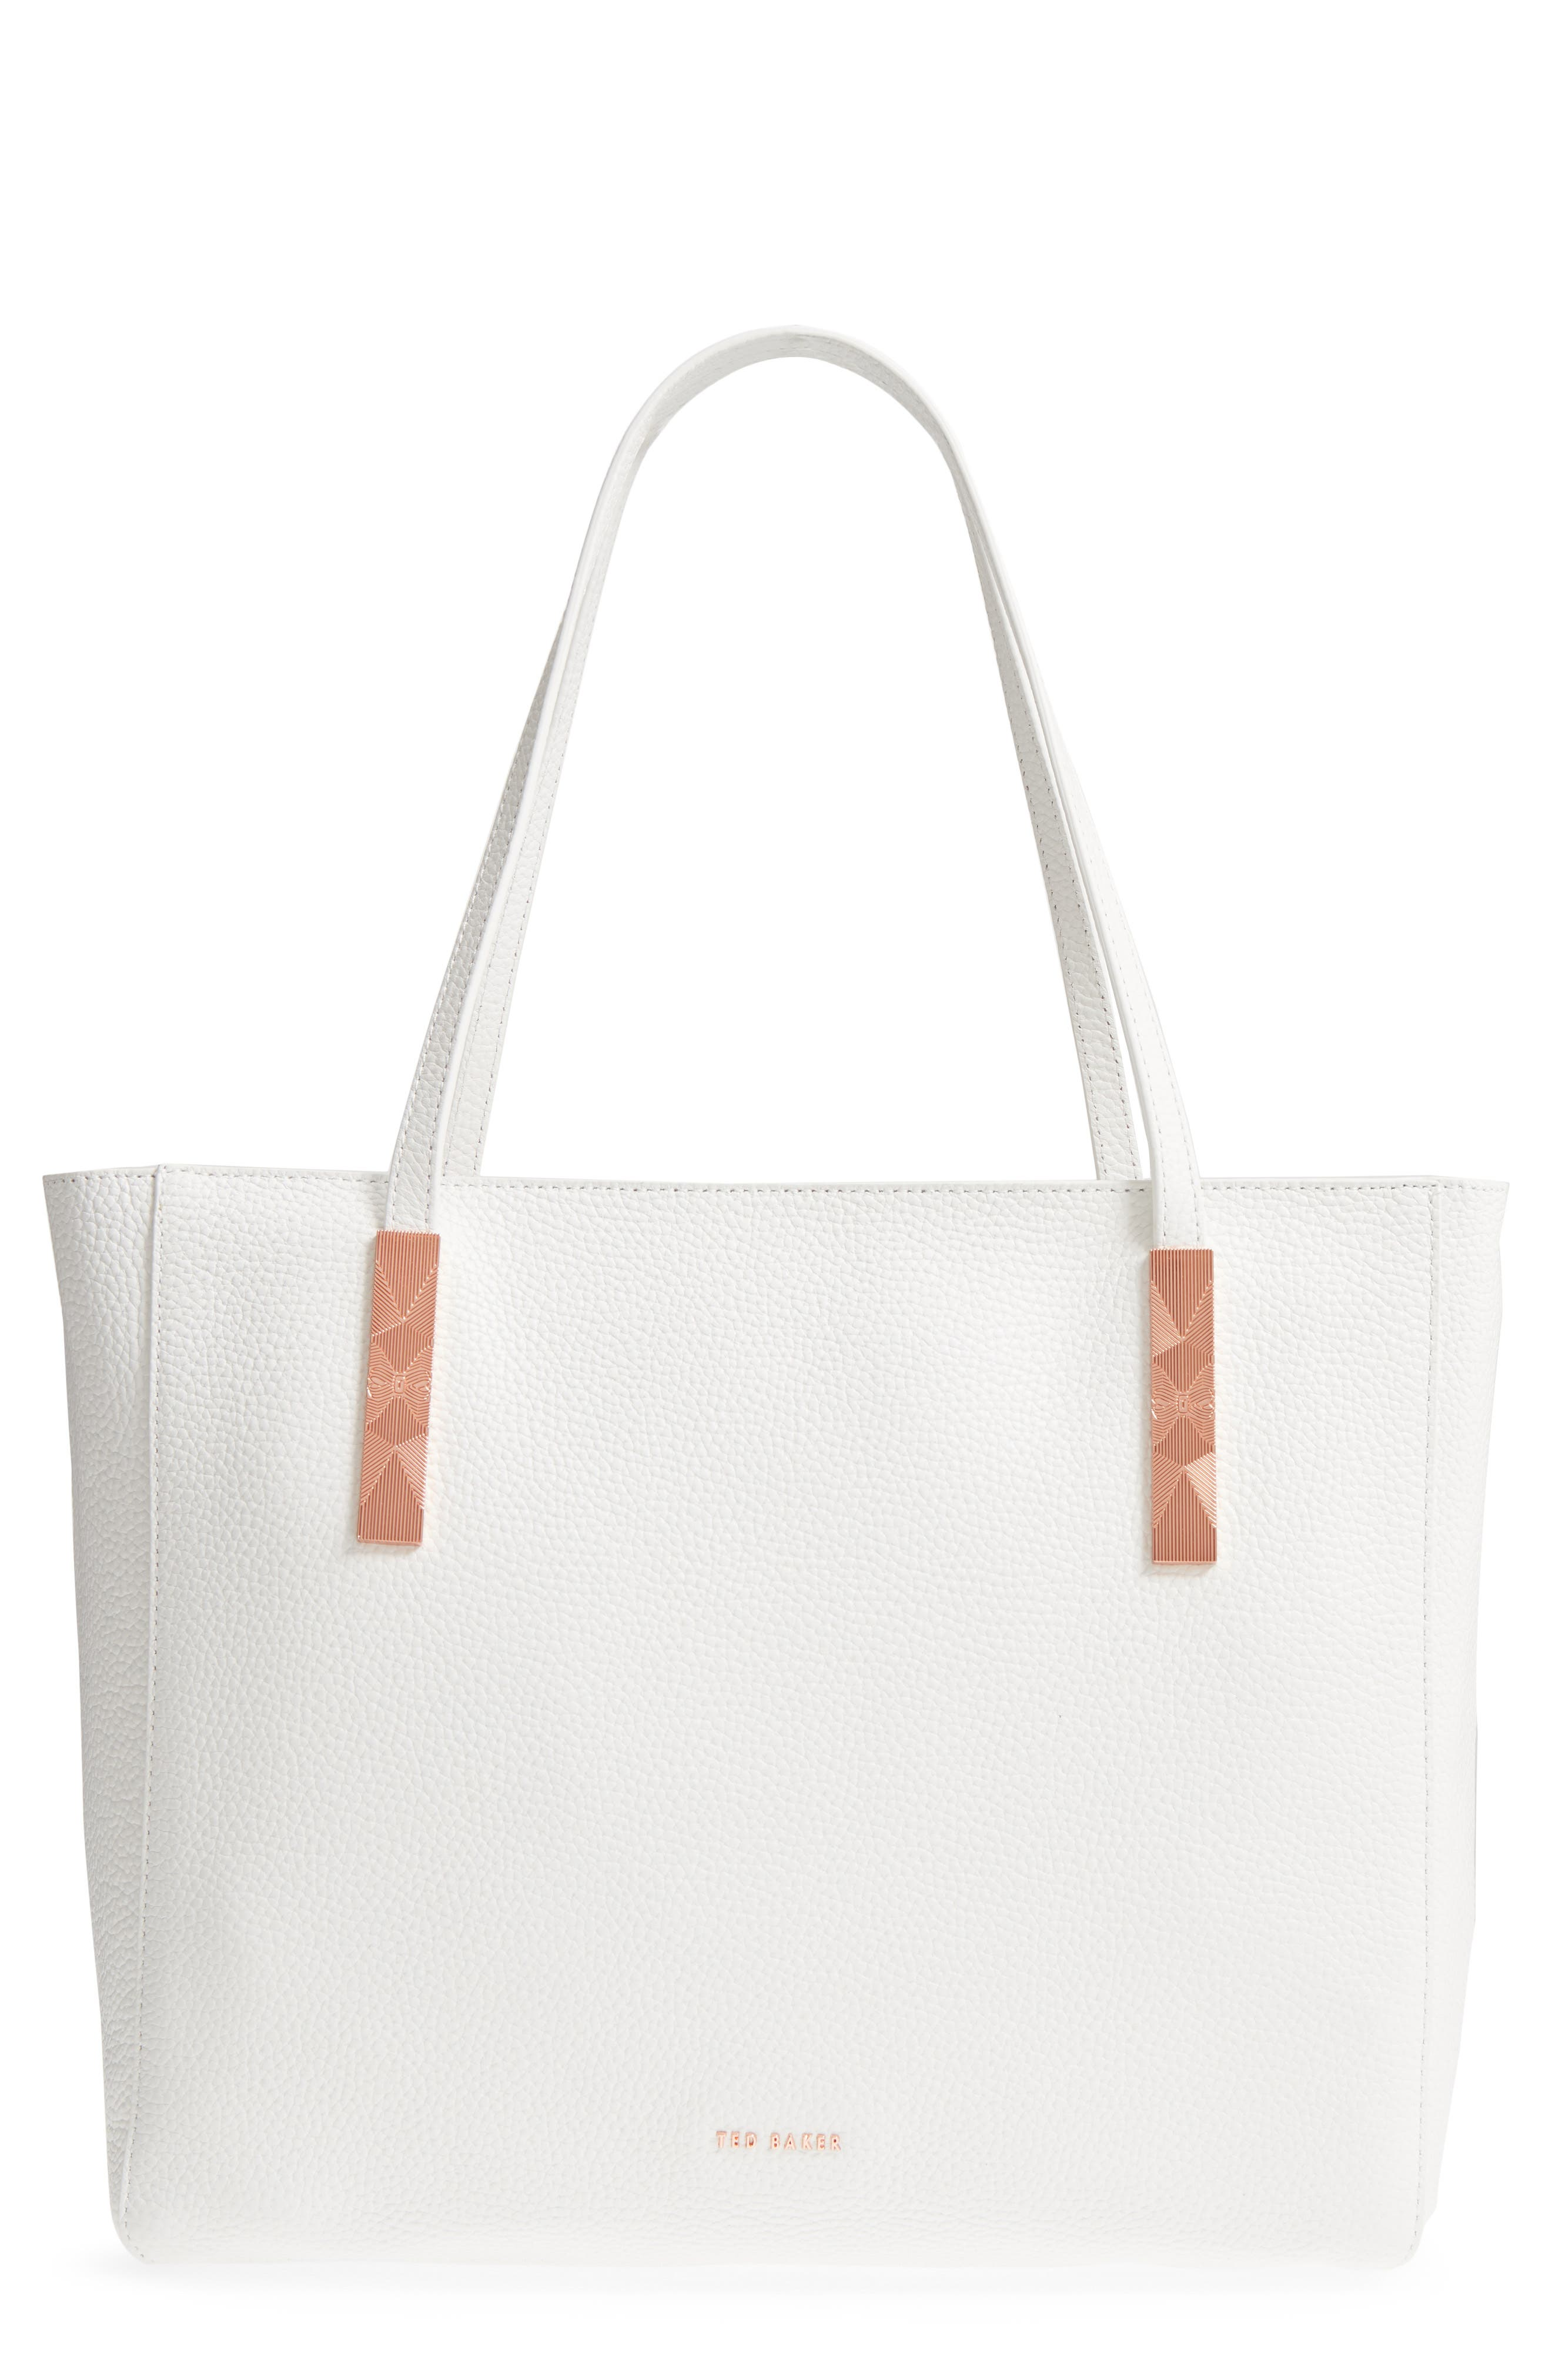 TED BAKER LONDON,                             Pebbled Leather Tote,                             Main thumbnail 1, color,                             110